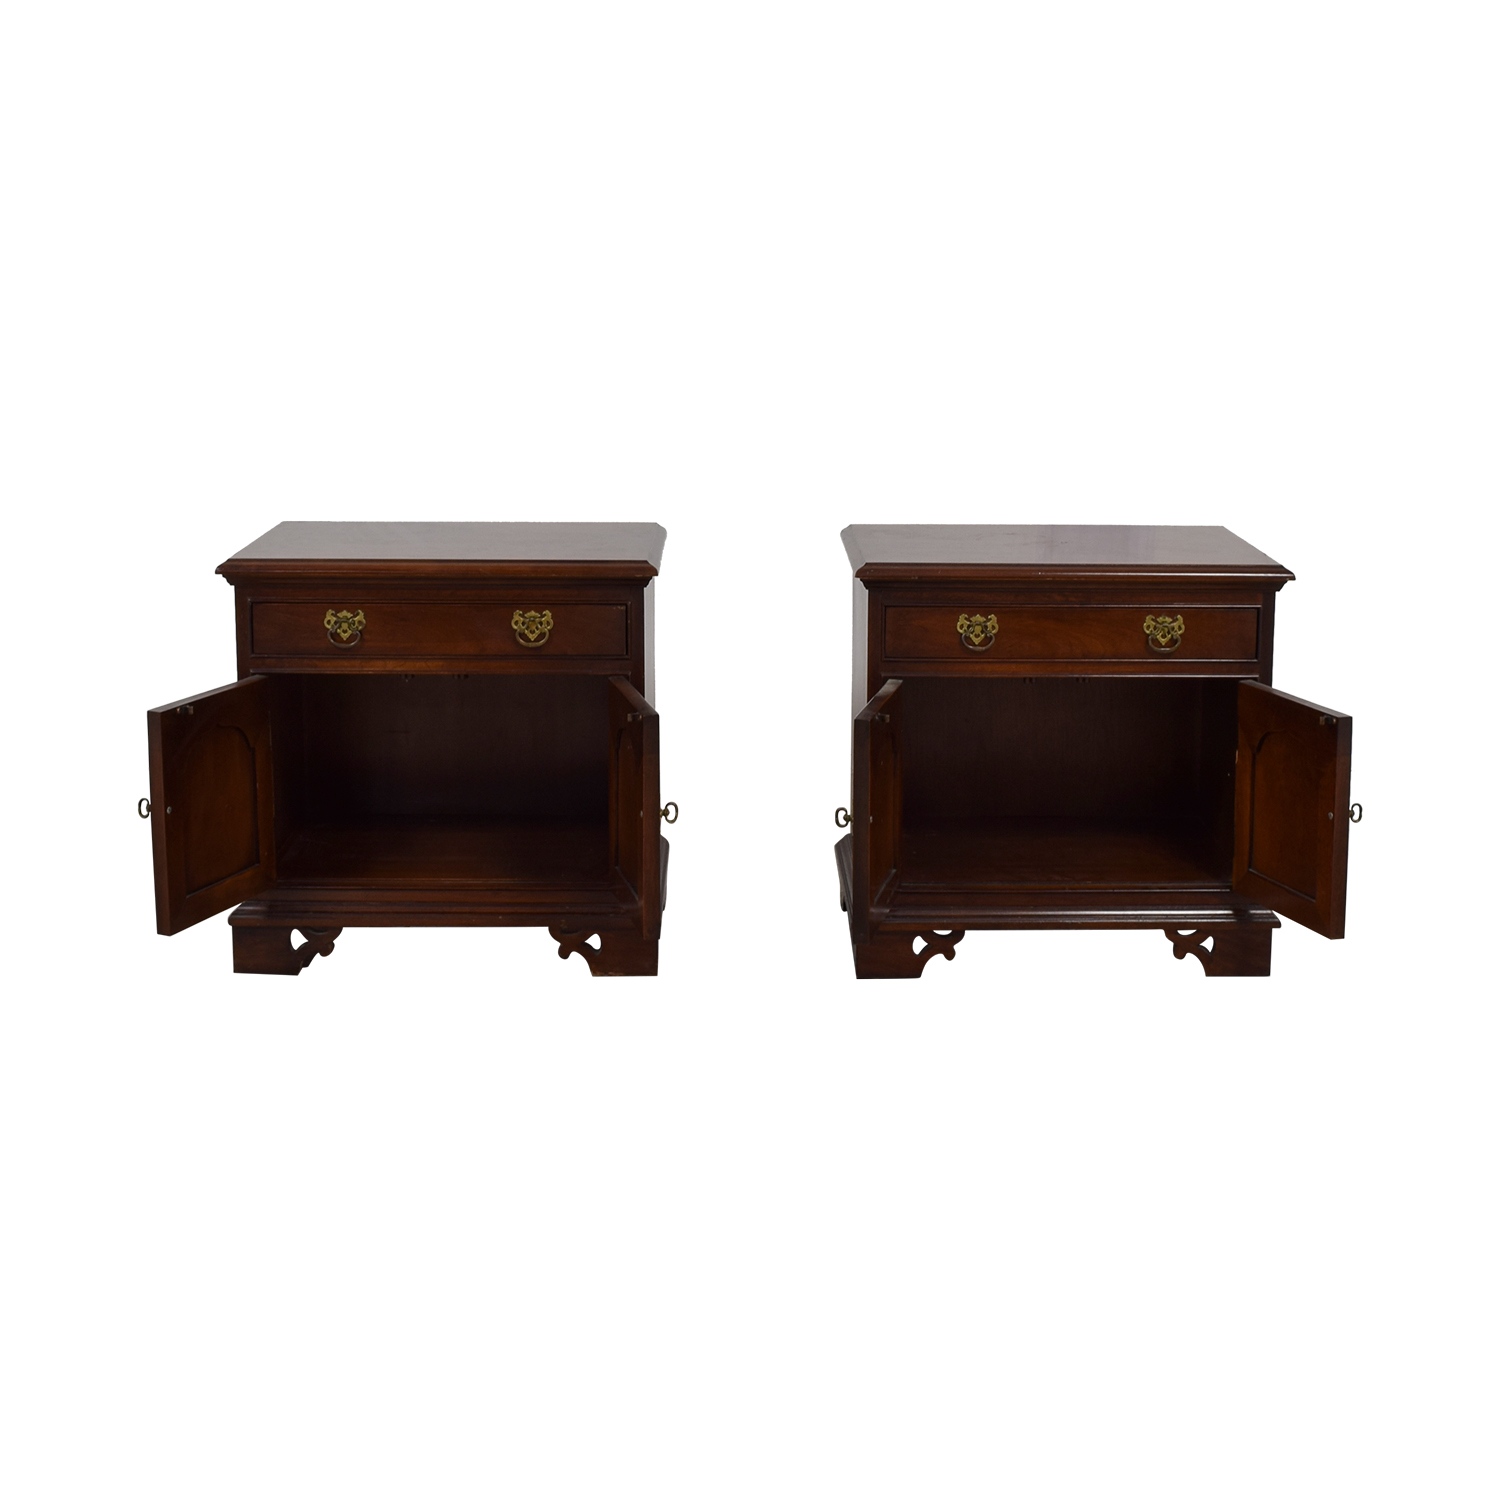 Thomasville Thomasville Cherry Wood Single-Drawer Nightstands nyc